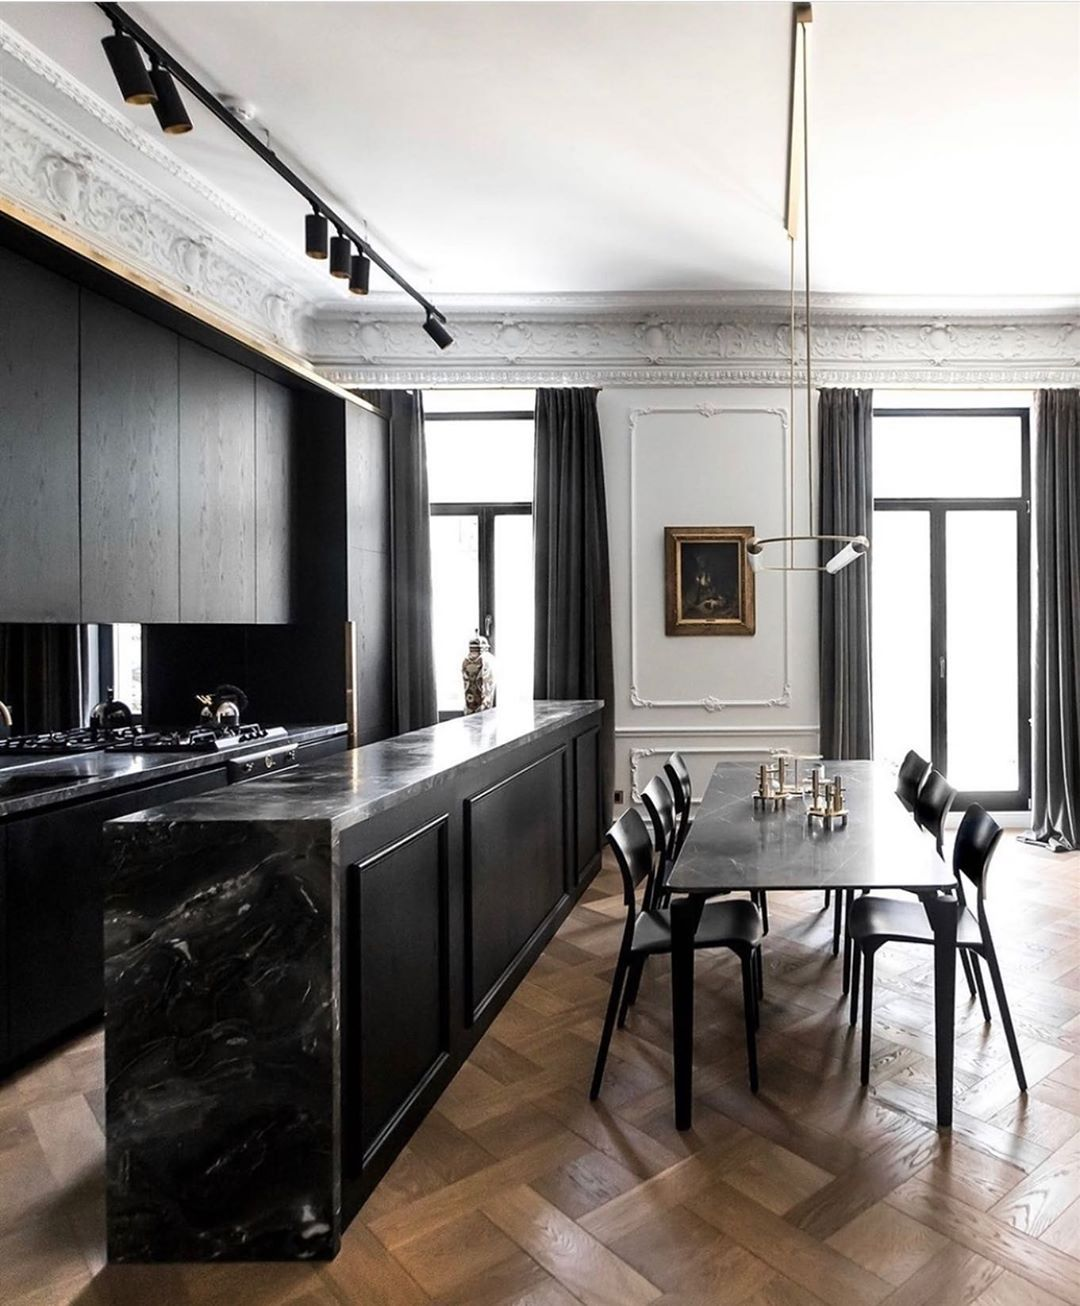 N I N A T A K E S H On Instagram An All Black Kitchen In